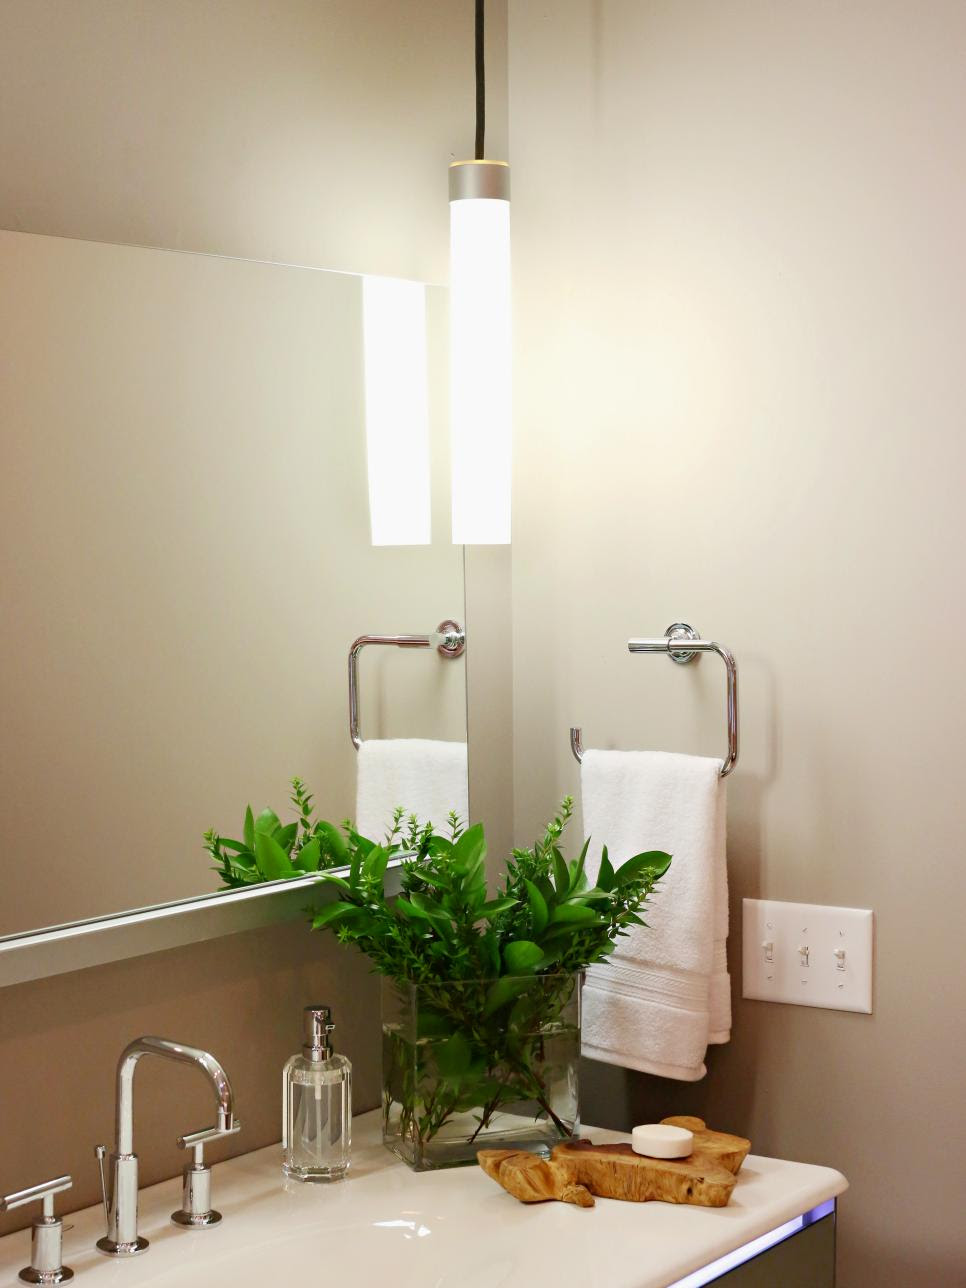 Pictures of Bathroom Lighting Ideas and Options | DIY